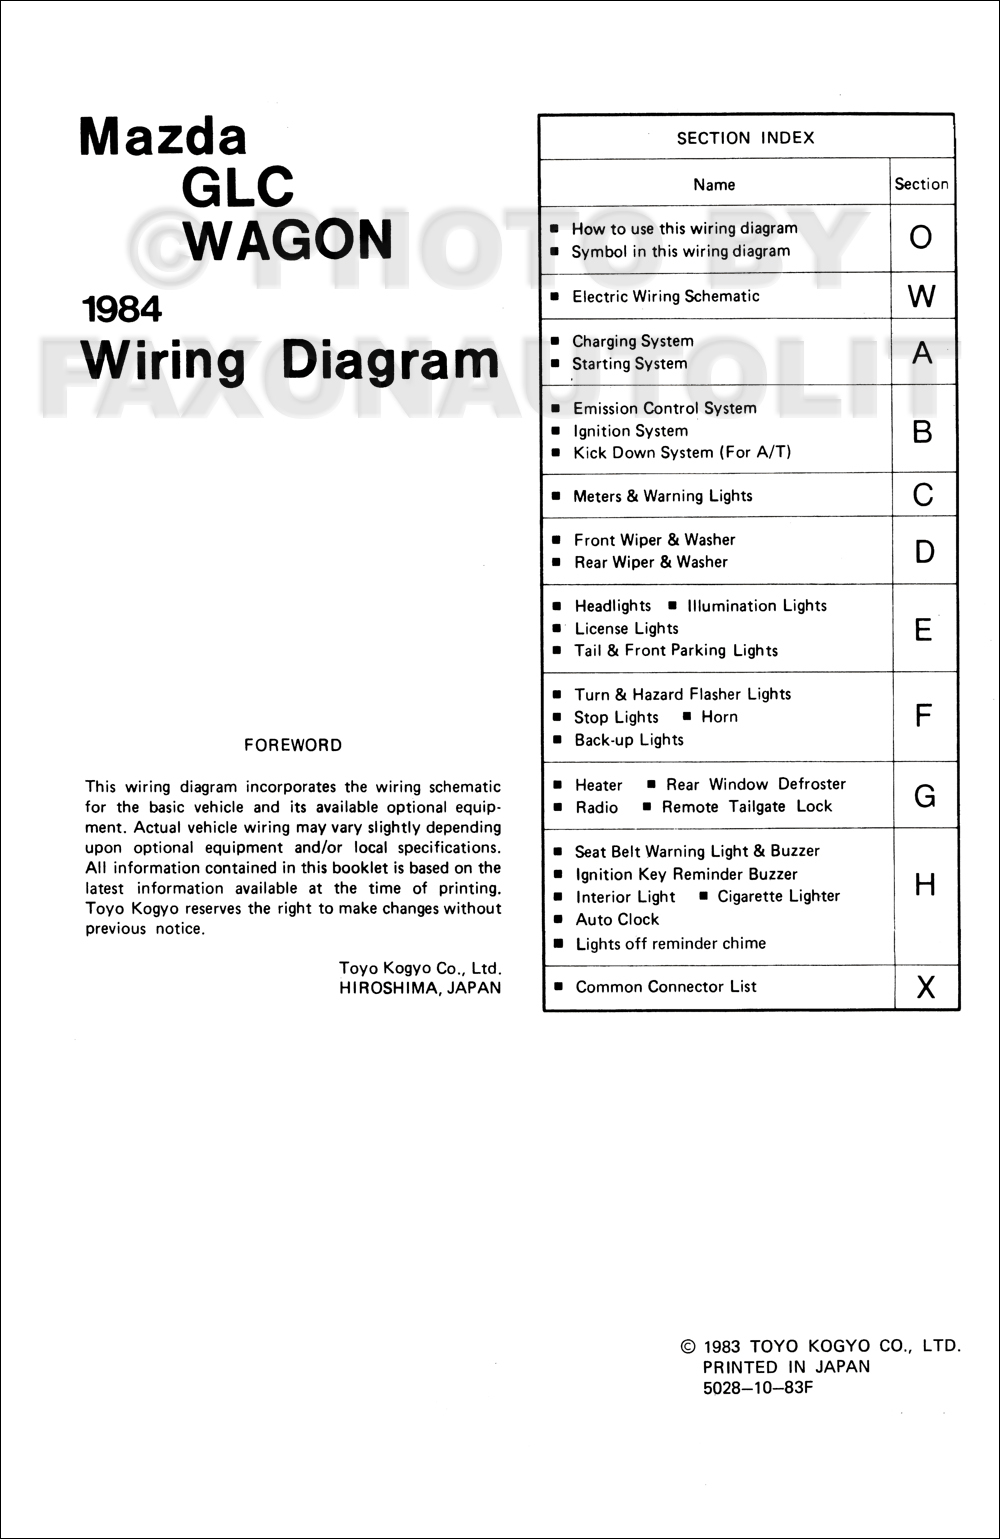 1984 Mazda Glc Wagon Wiring Diagram Manual Original